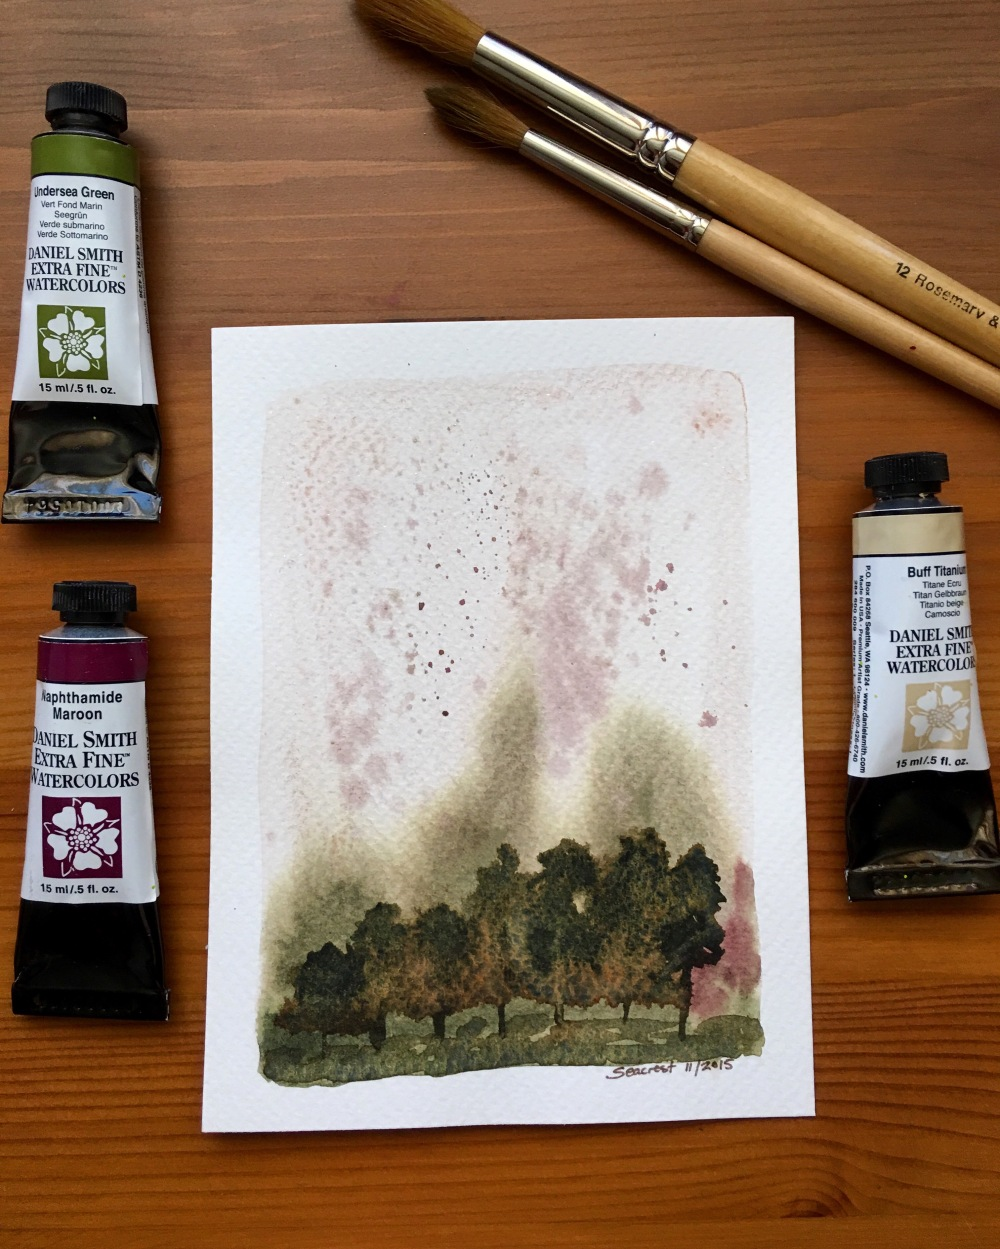 Daniel Smith Extra Fine watercolor painting using Undersea Green, Naphthamide Maroon, and Buff Titaniuml, paint tubes and Rosemary & Co brushes